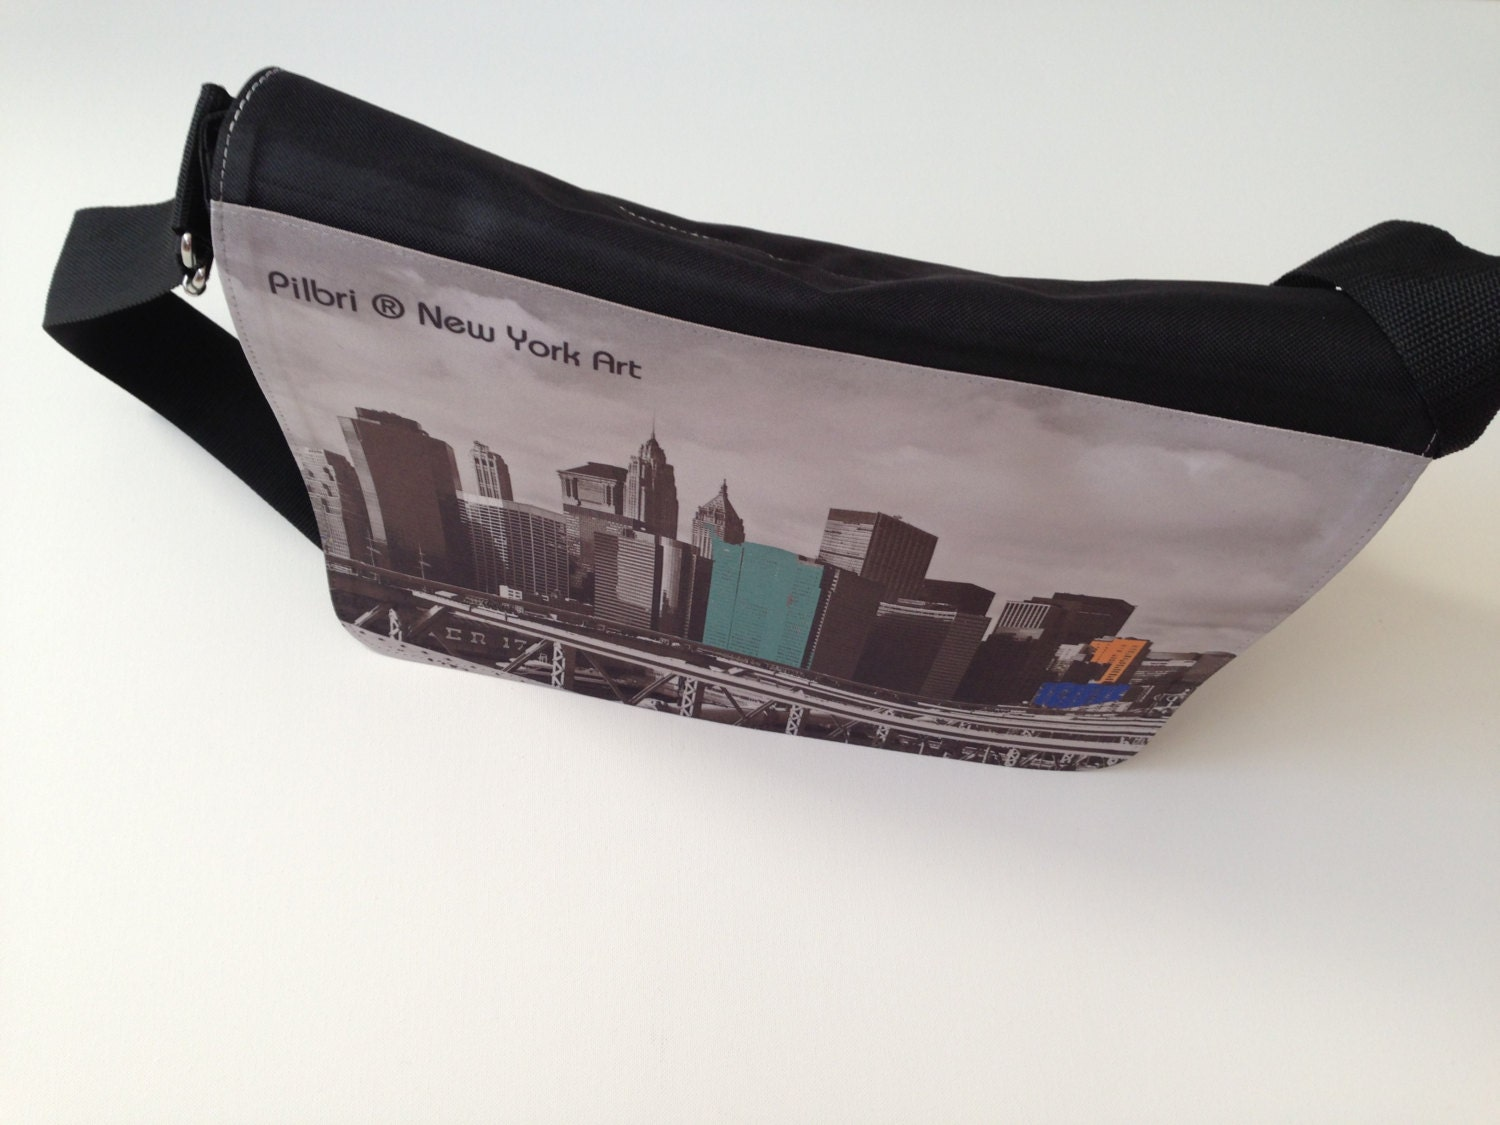 Art Bag Nyc Cool Business Bag For School University Or The Office With A